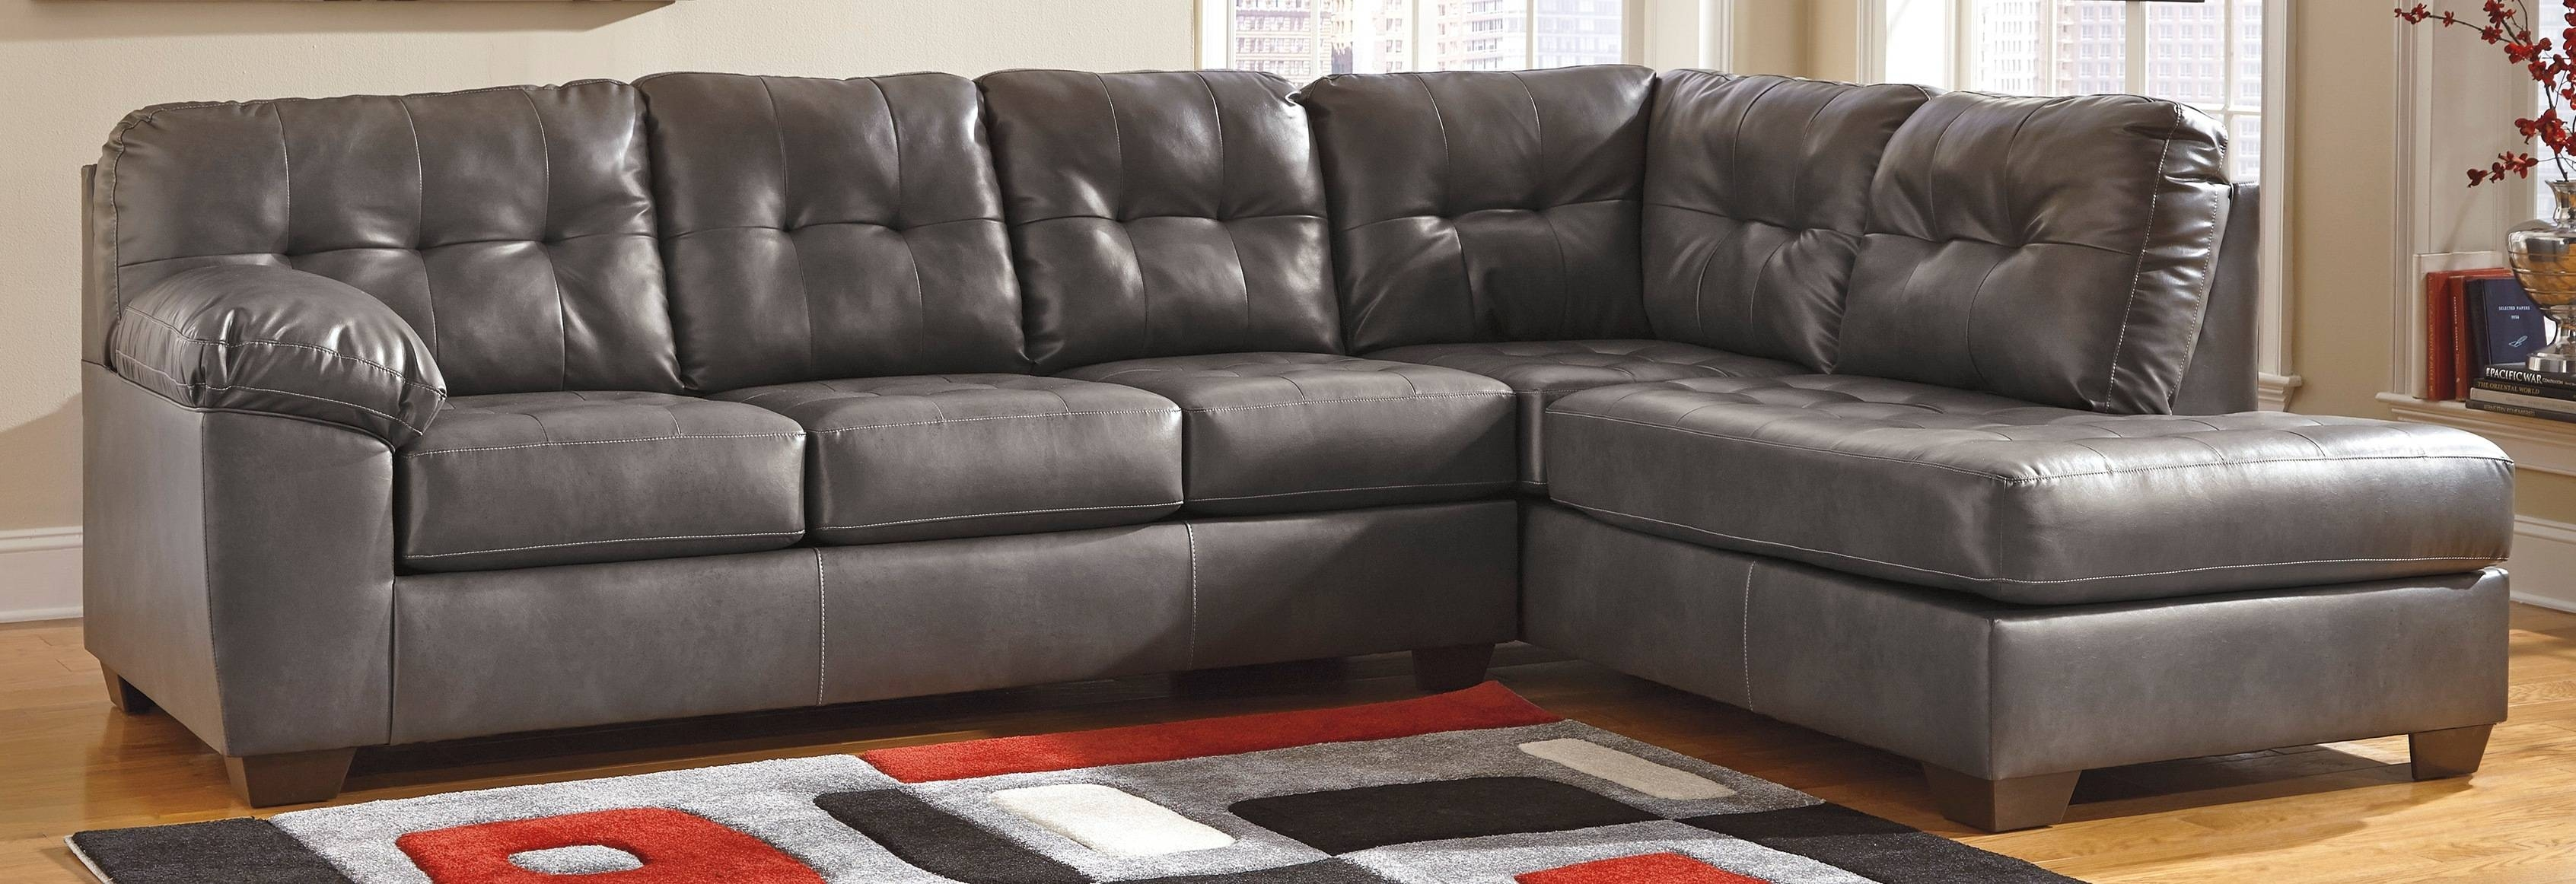 Photos Gray Leather Sectional Sofas - Gray leather sectional sofas